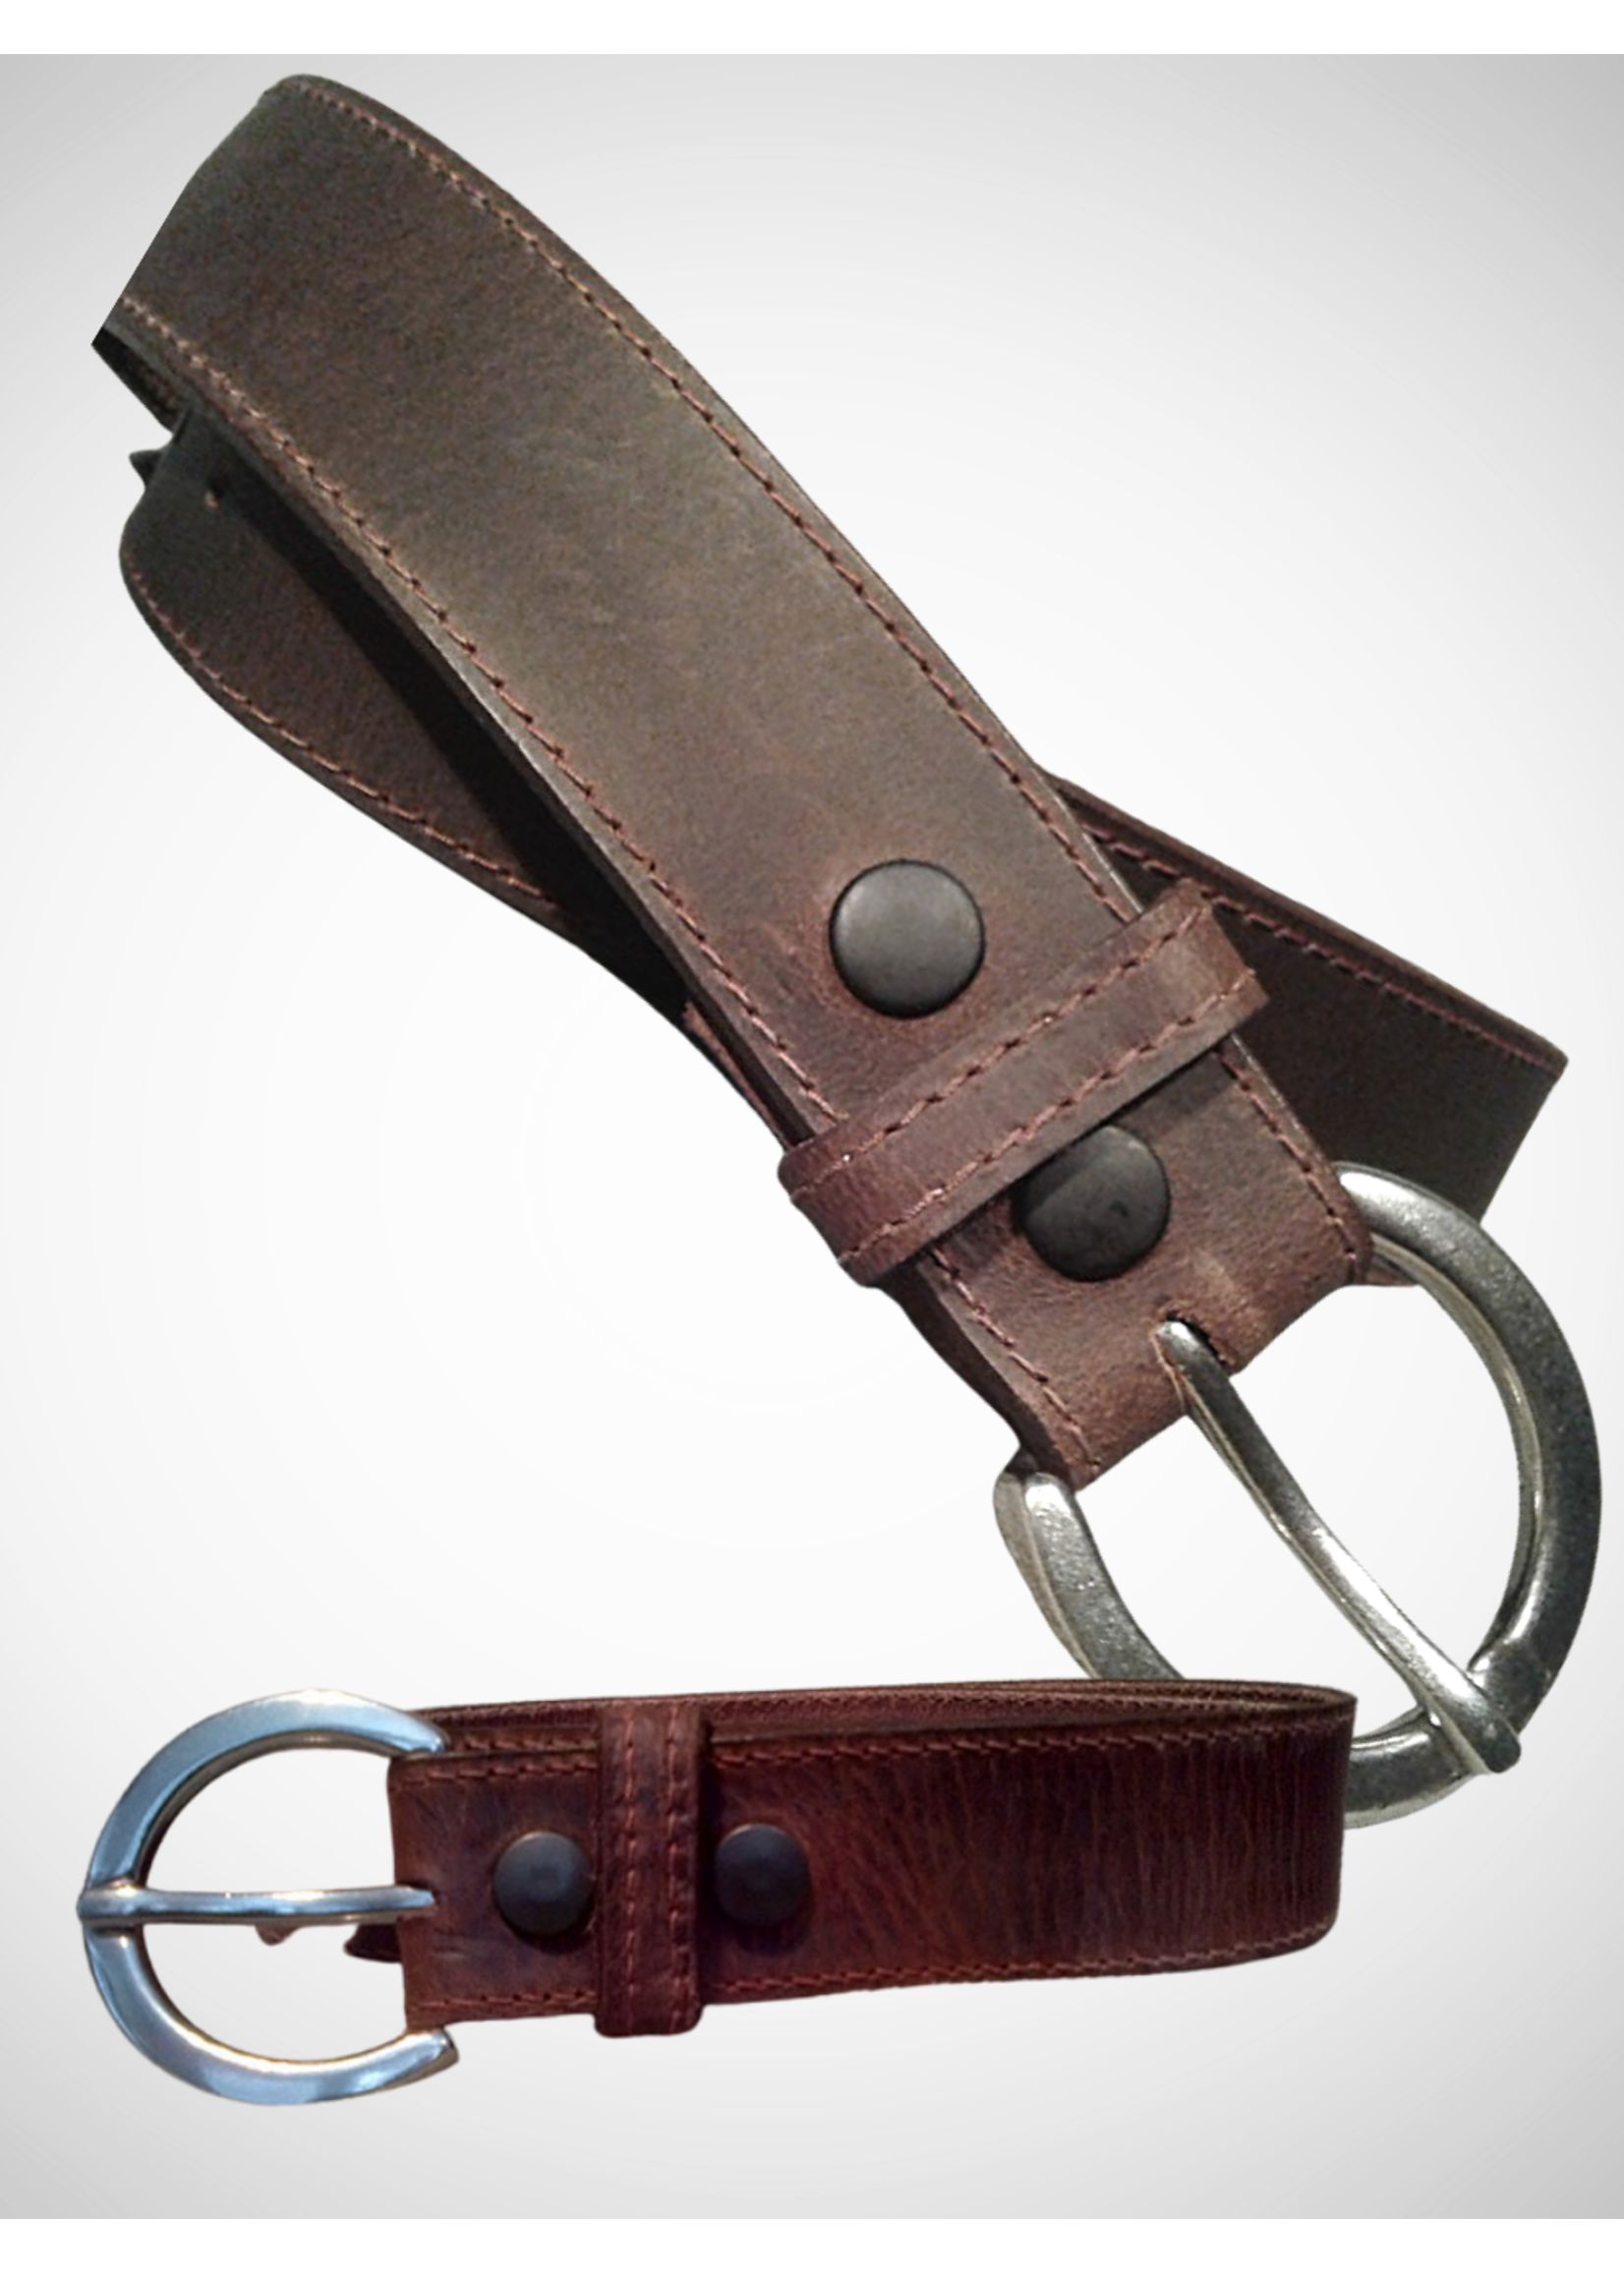 Distressed Stitched Leather Belt. 40mm